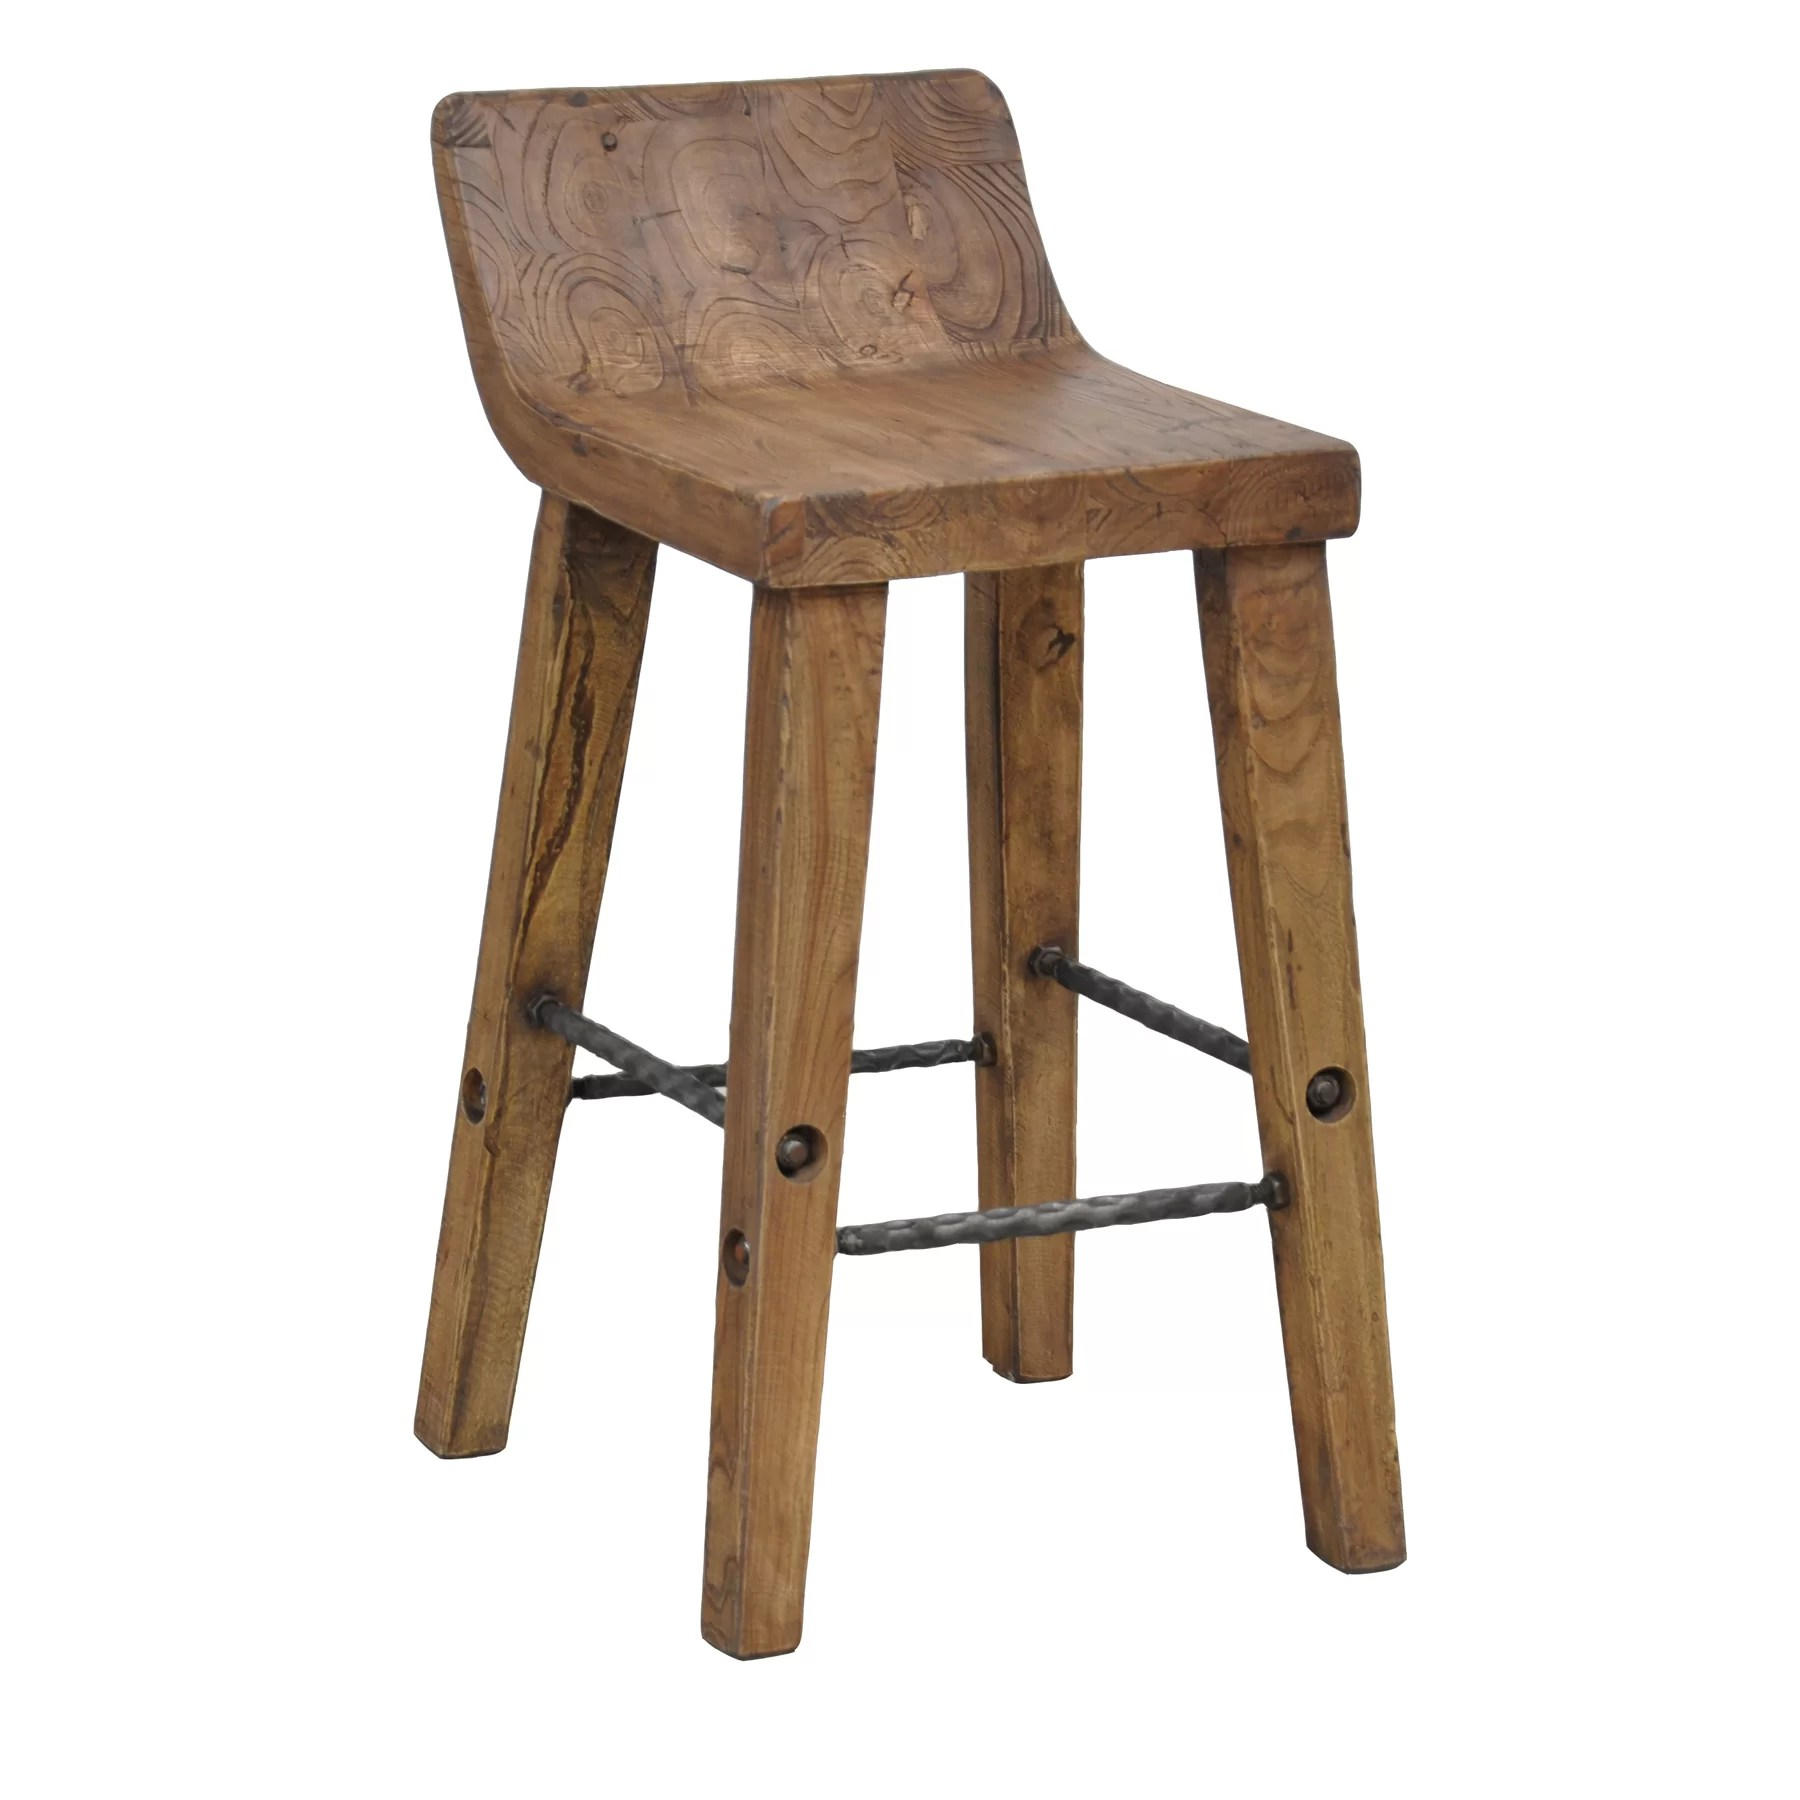 Bar And Stools For Home Kosas Home 24 Quot Bar Stool And Reviews Wayfair